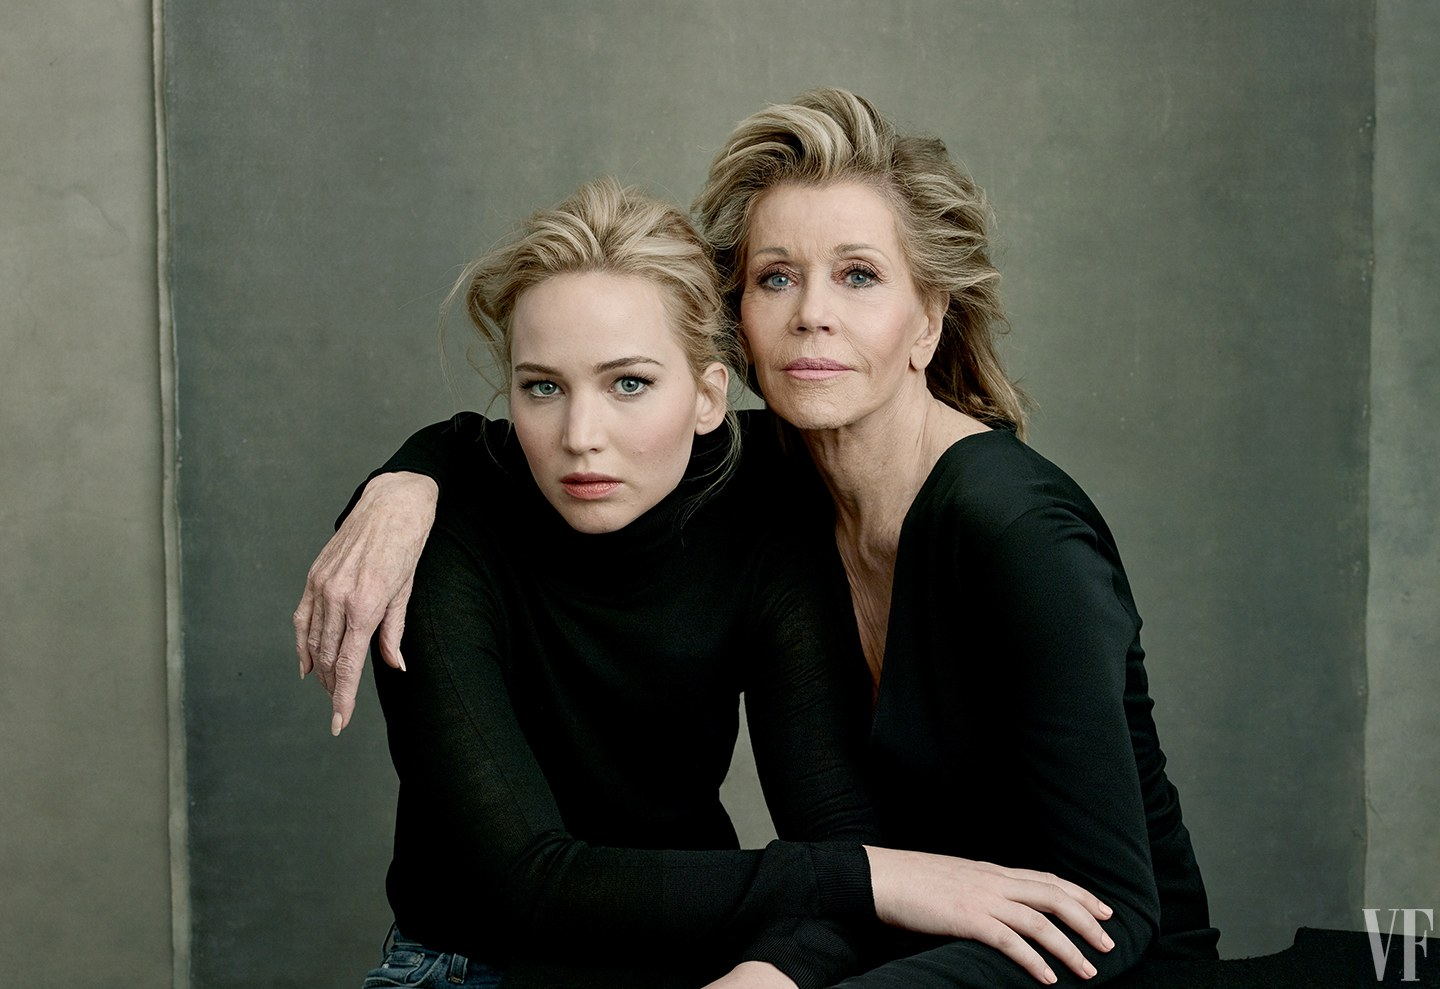 b-hollywood-portfolio-2016-jennifer-lawrence-jane-fonda.jpg